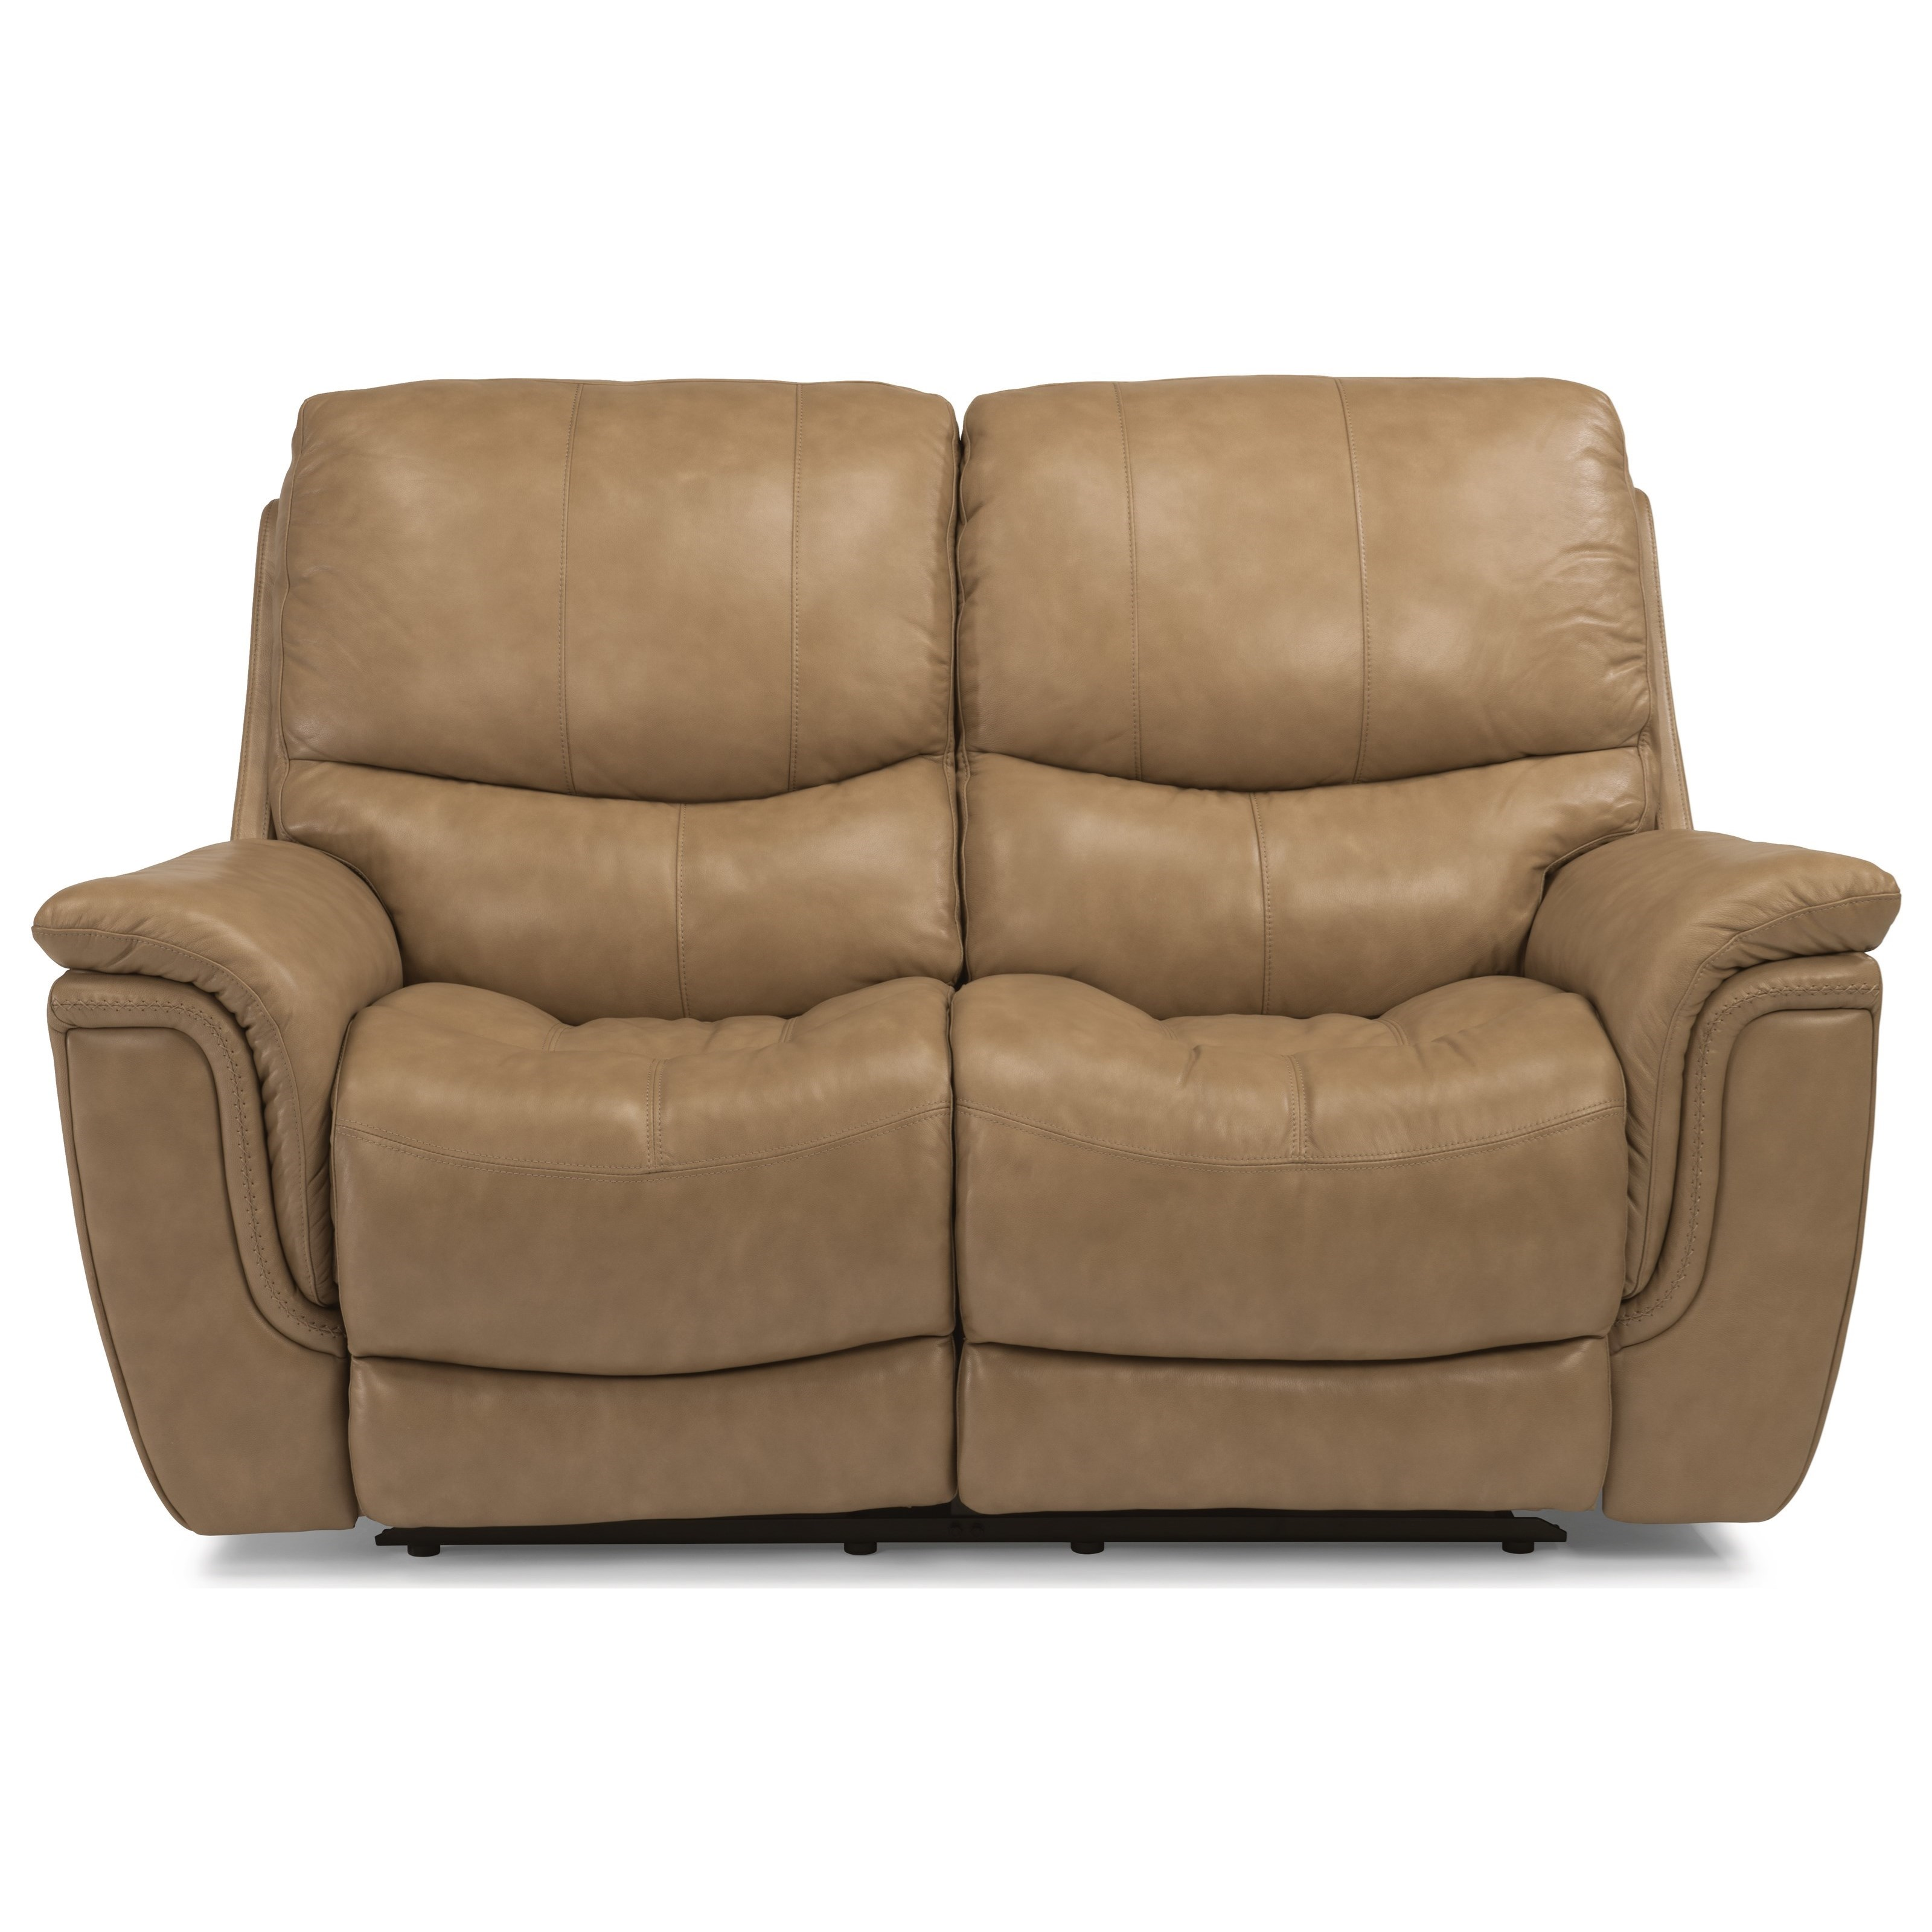 Flexsteel hip hop casual power reclining loveseat with usb ports rotmans reclining love Power loveseat recliner